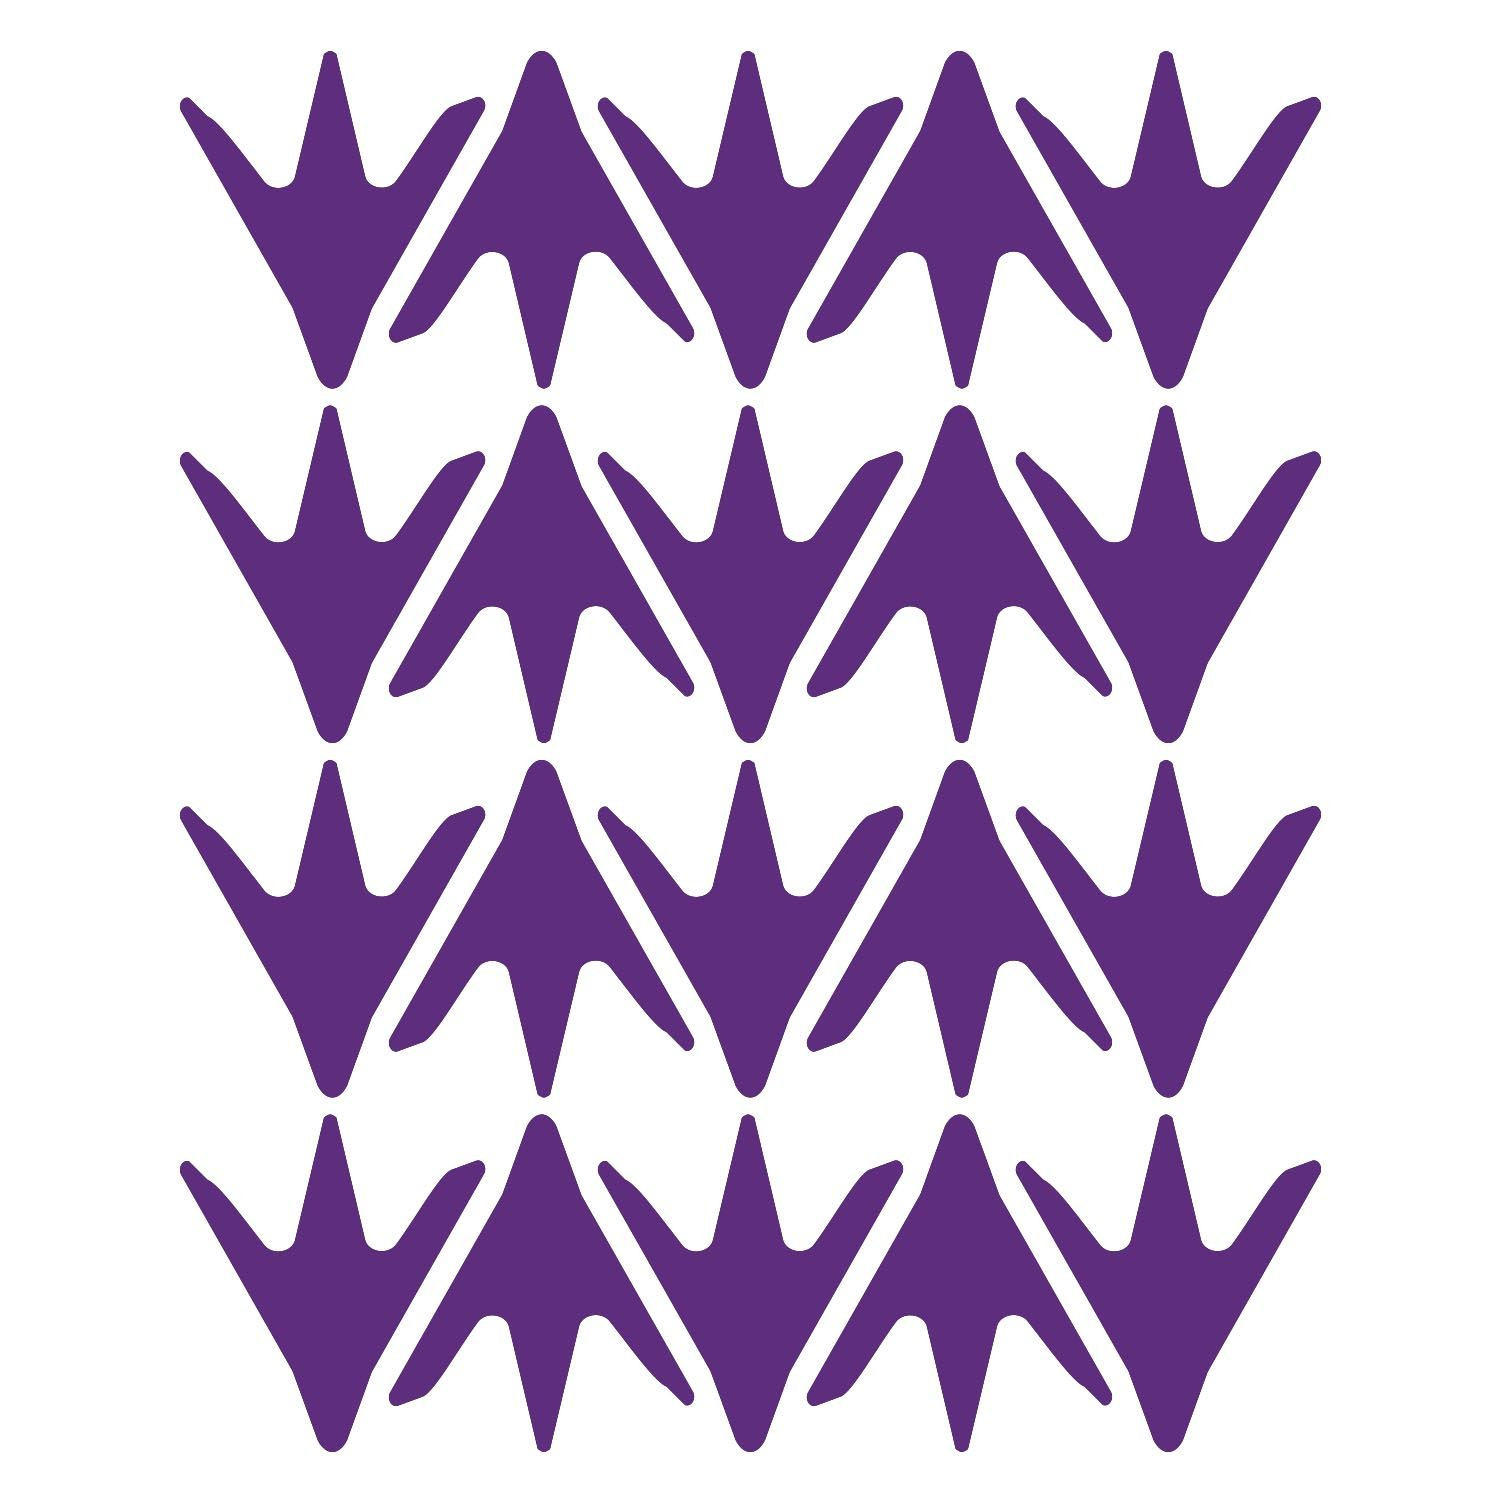 LiteMark 2 Inch Purple Removable Chicken Feet Decal Stickers for Floors and Walls - Pack of 60